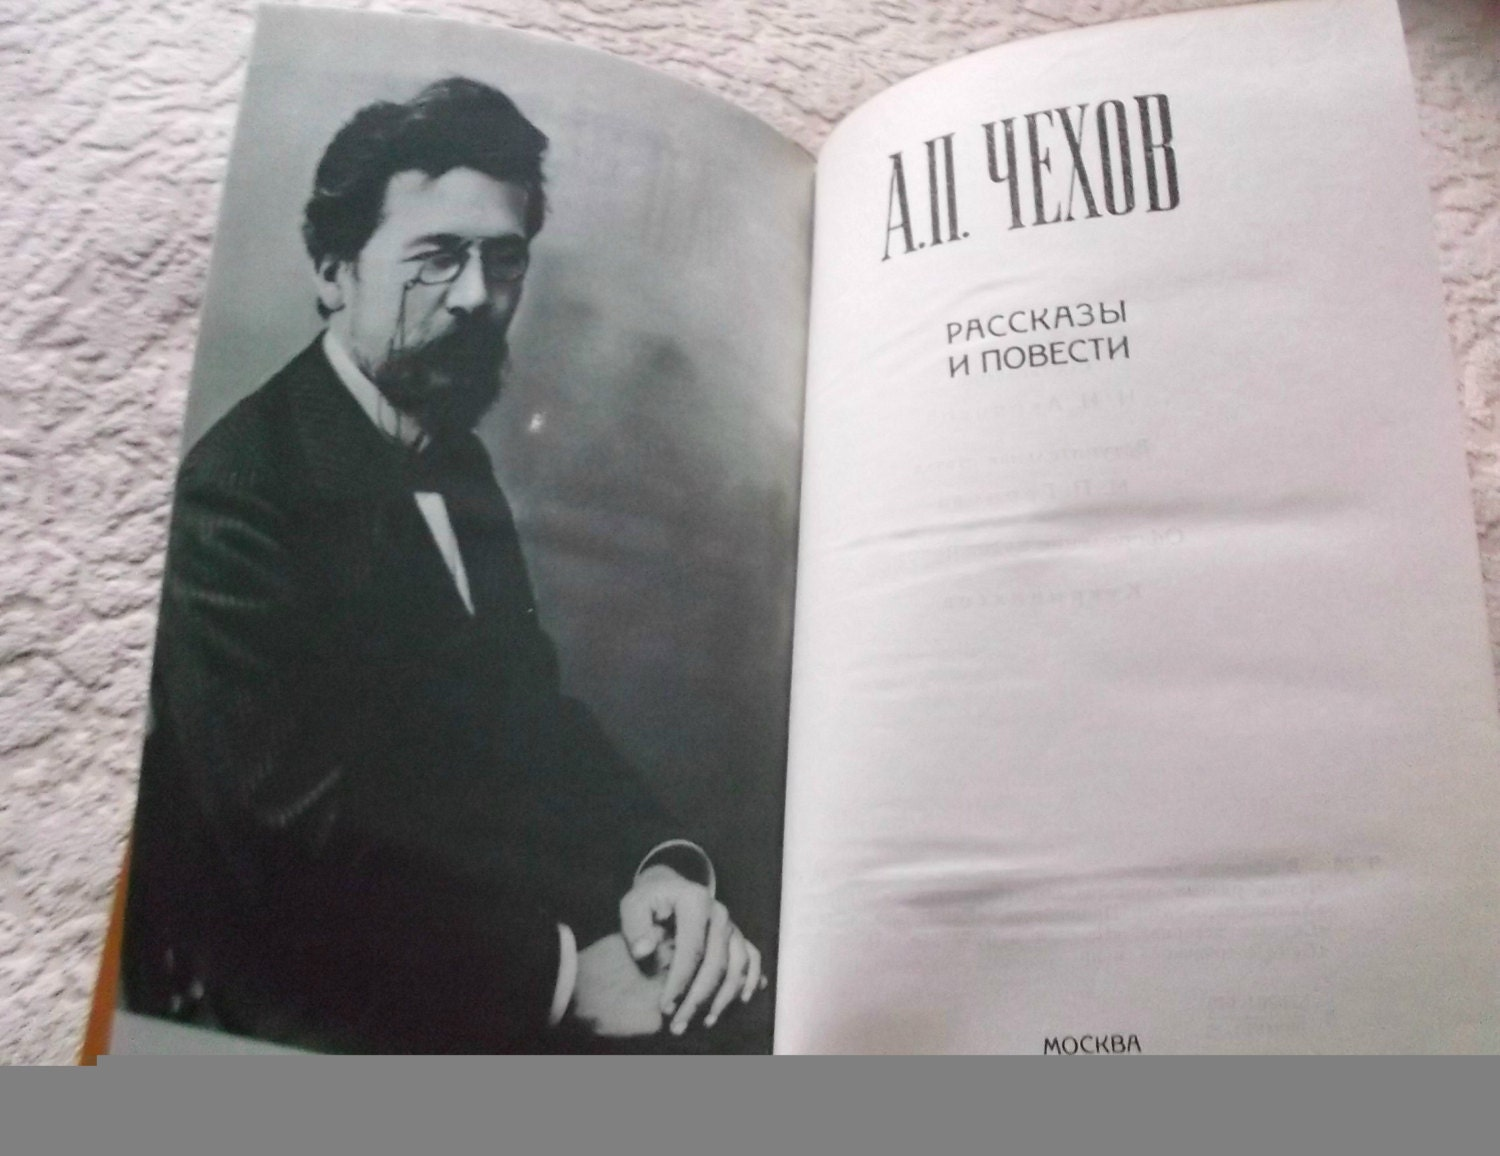 Chekhov Russia  City pictures : Anton Chekhov Vintage Russian Hardcover Book by VintageRemembrance